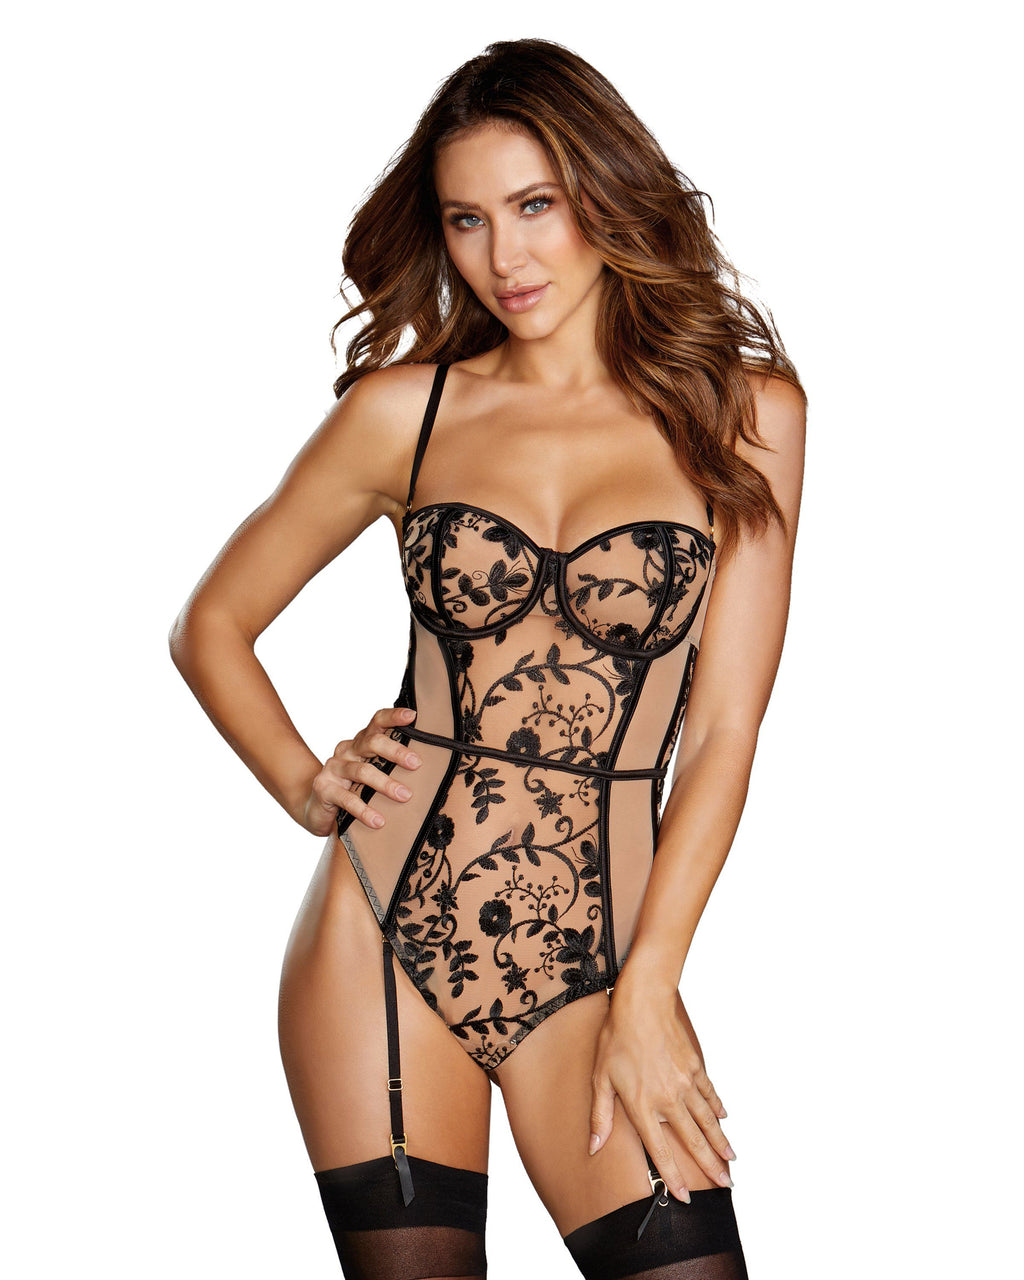 Sheer Nude Stretch Mesh Teddy with Contrasting Embroidery Teddy Dreamgirl International S Nude / Black